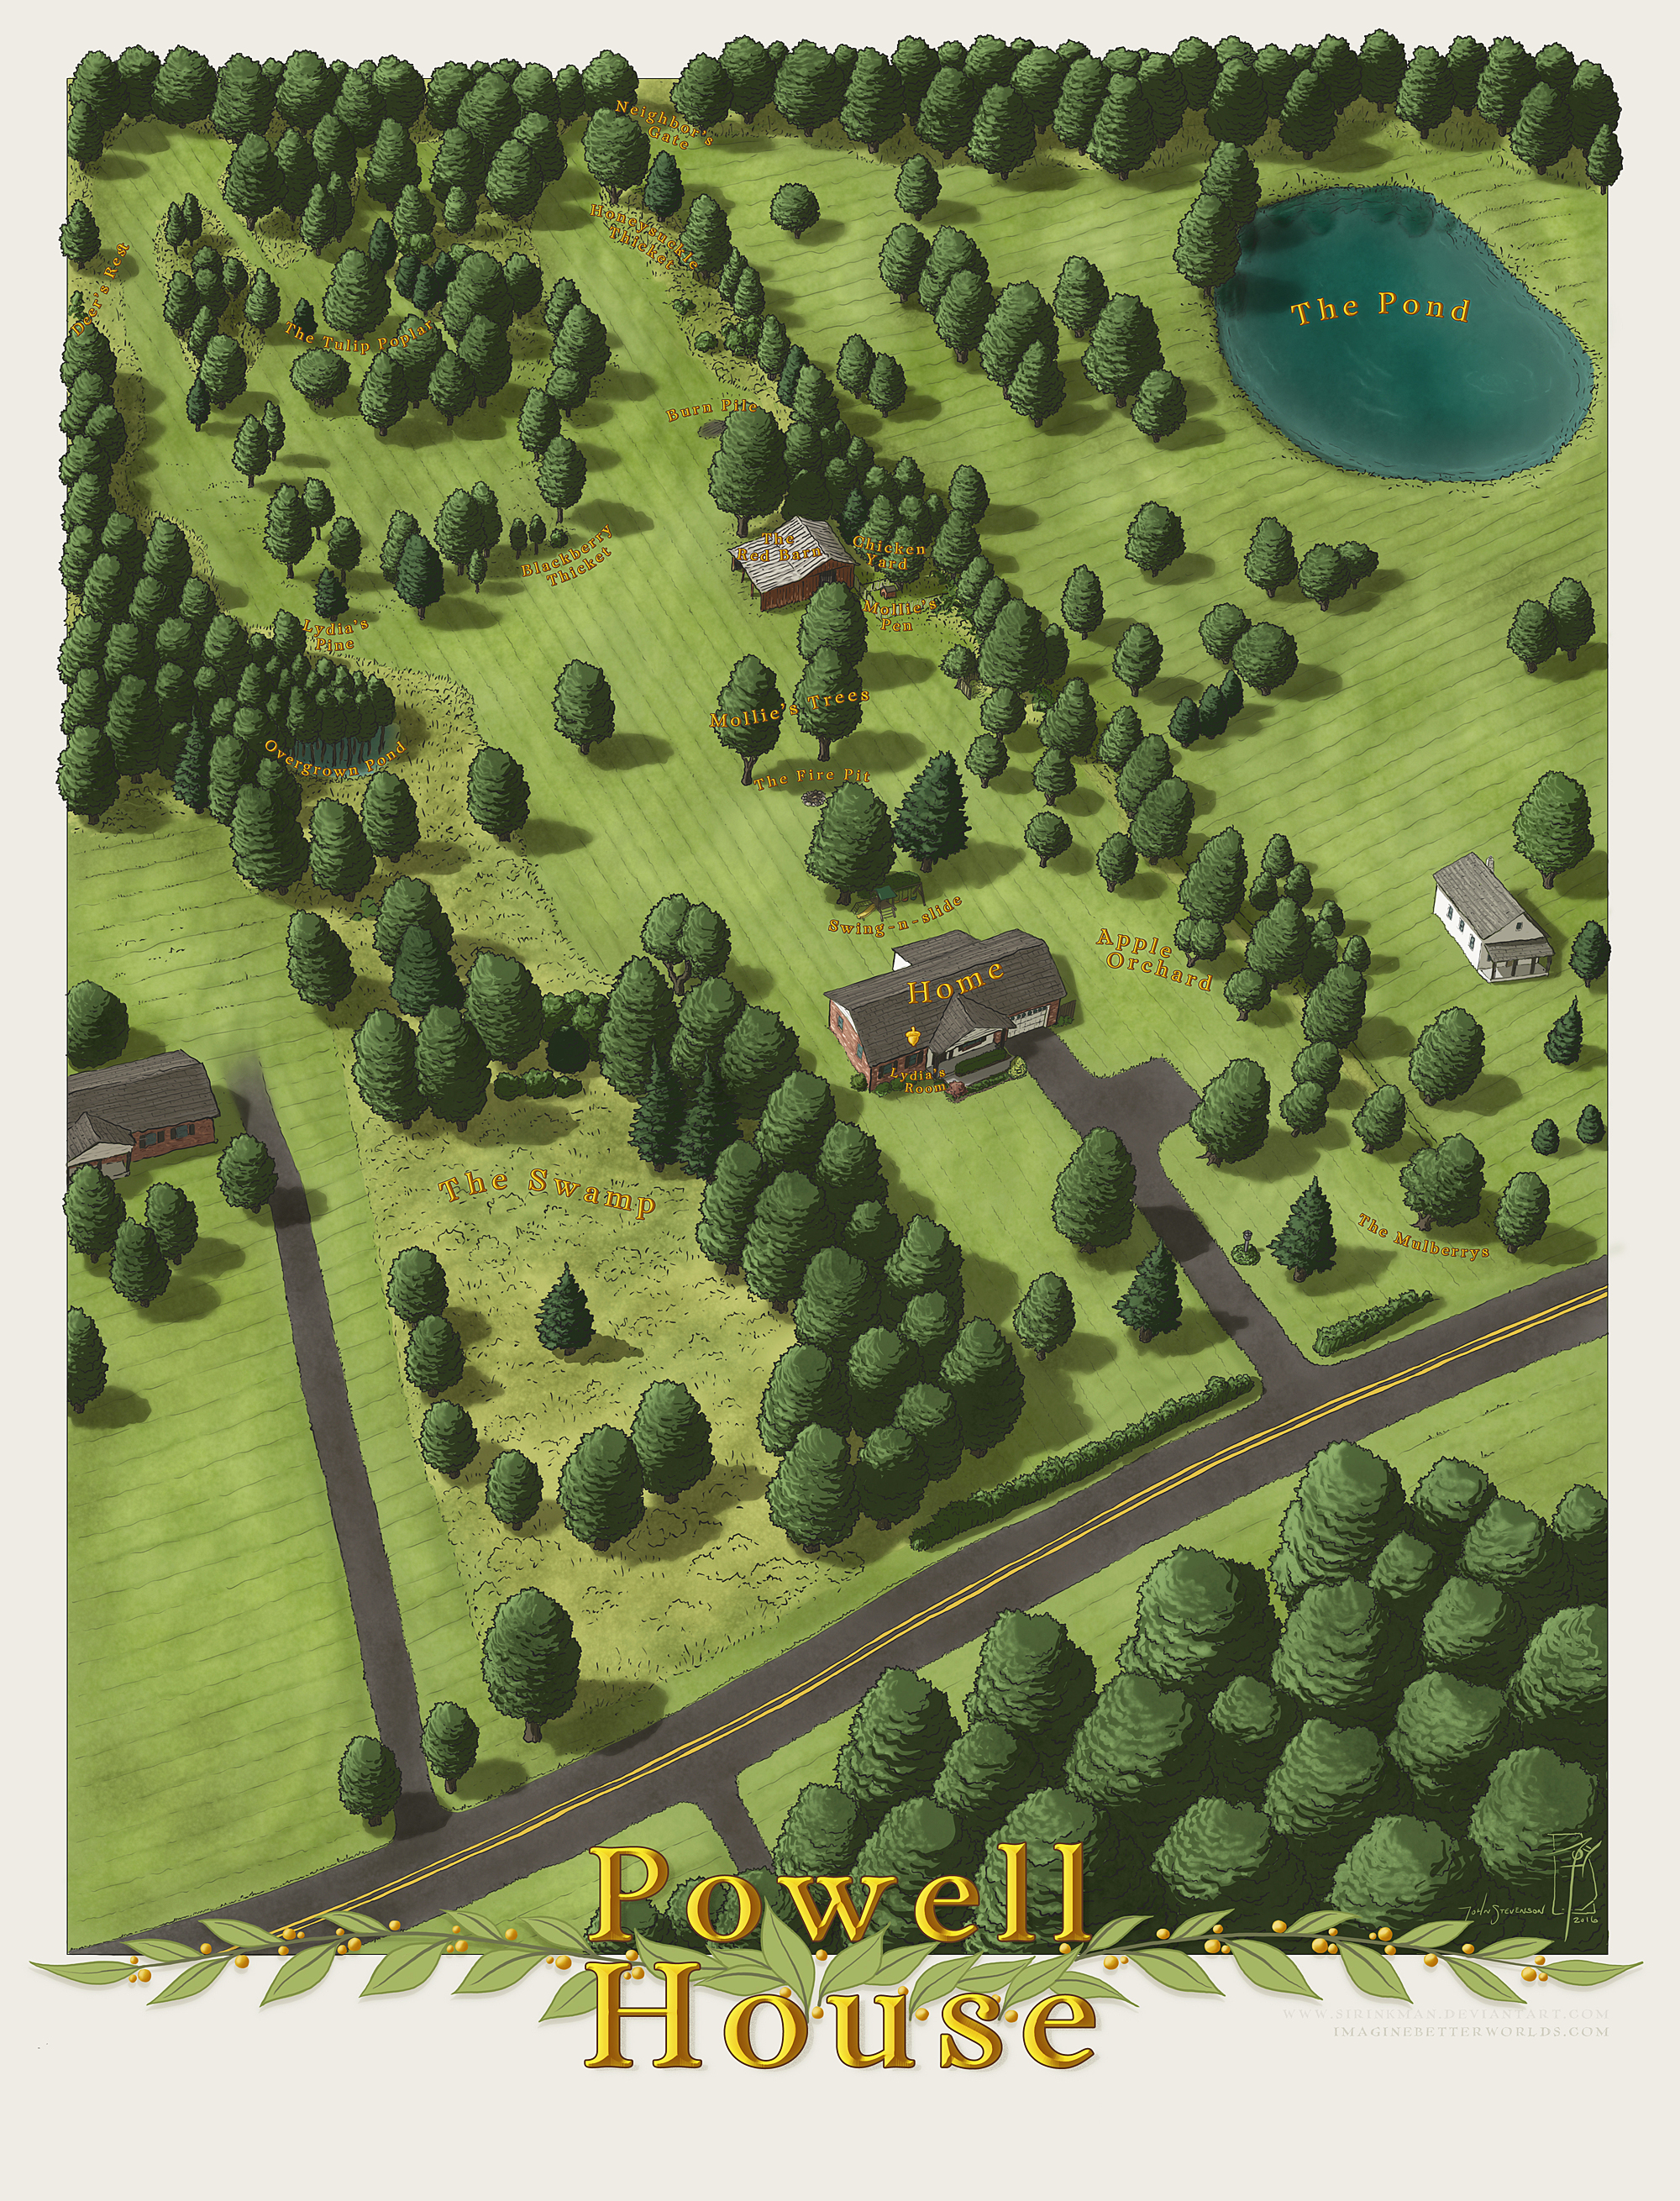 Powell house by sirinkman on deviantart for Powell house